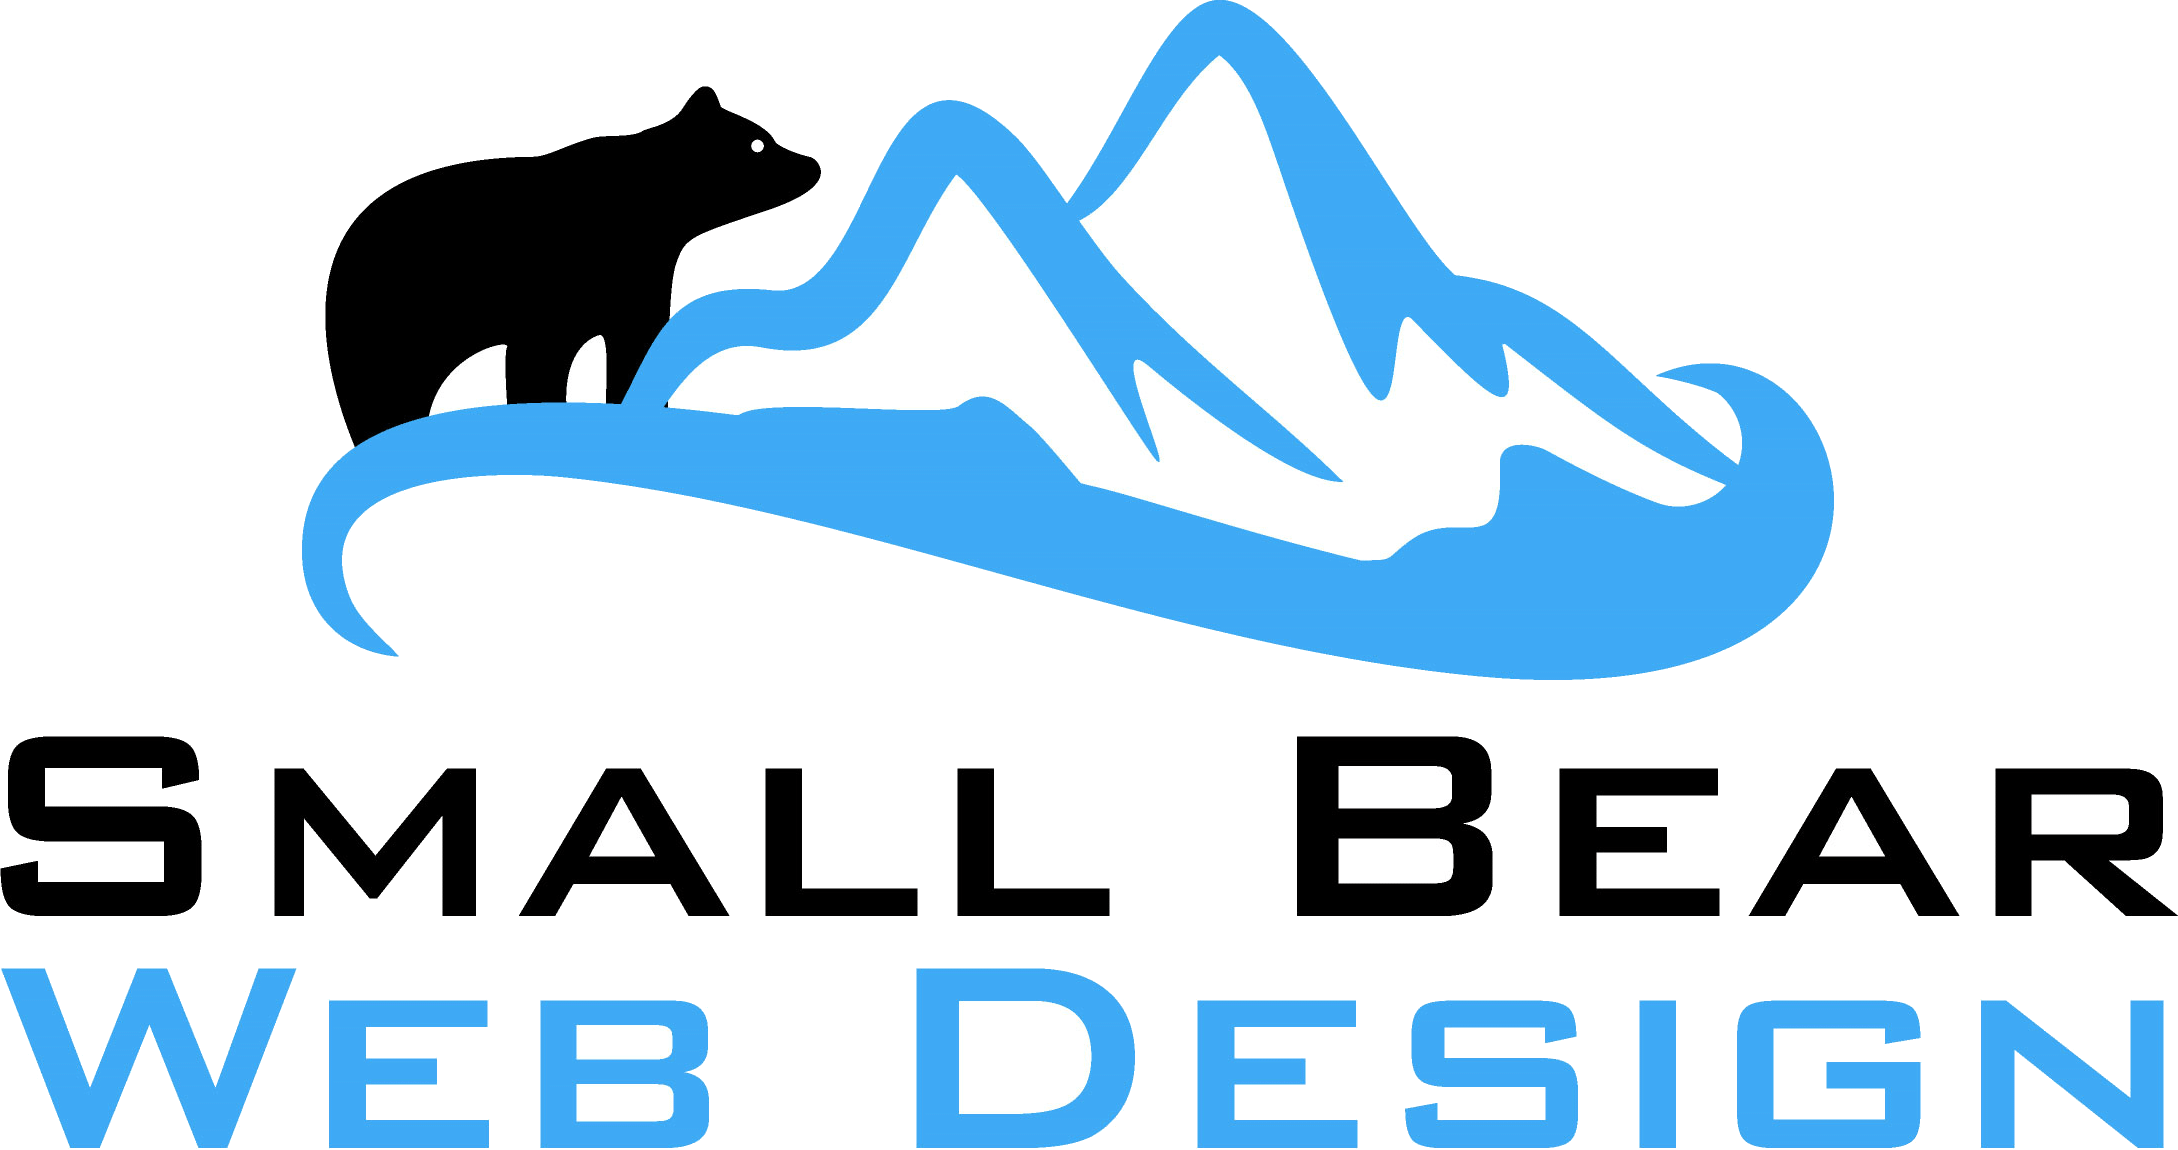 Small Bear Web Design